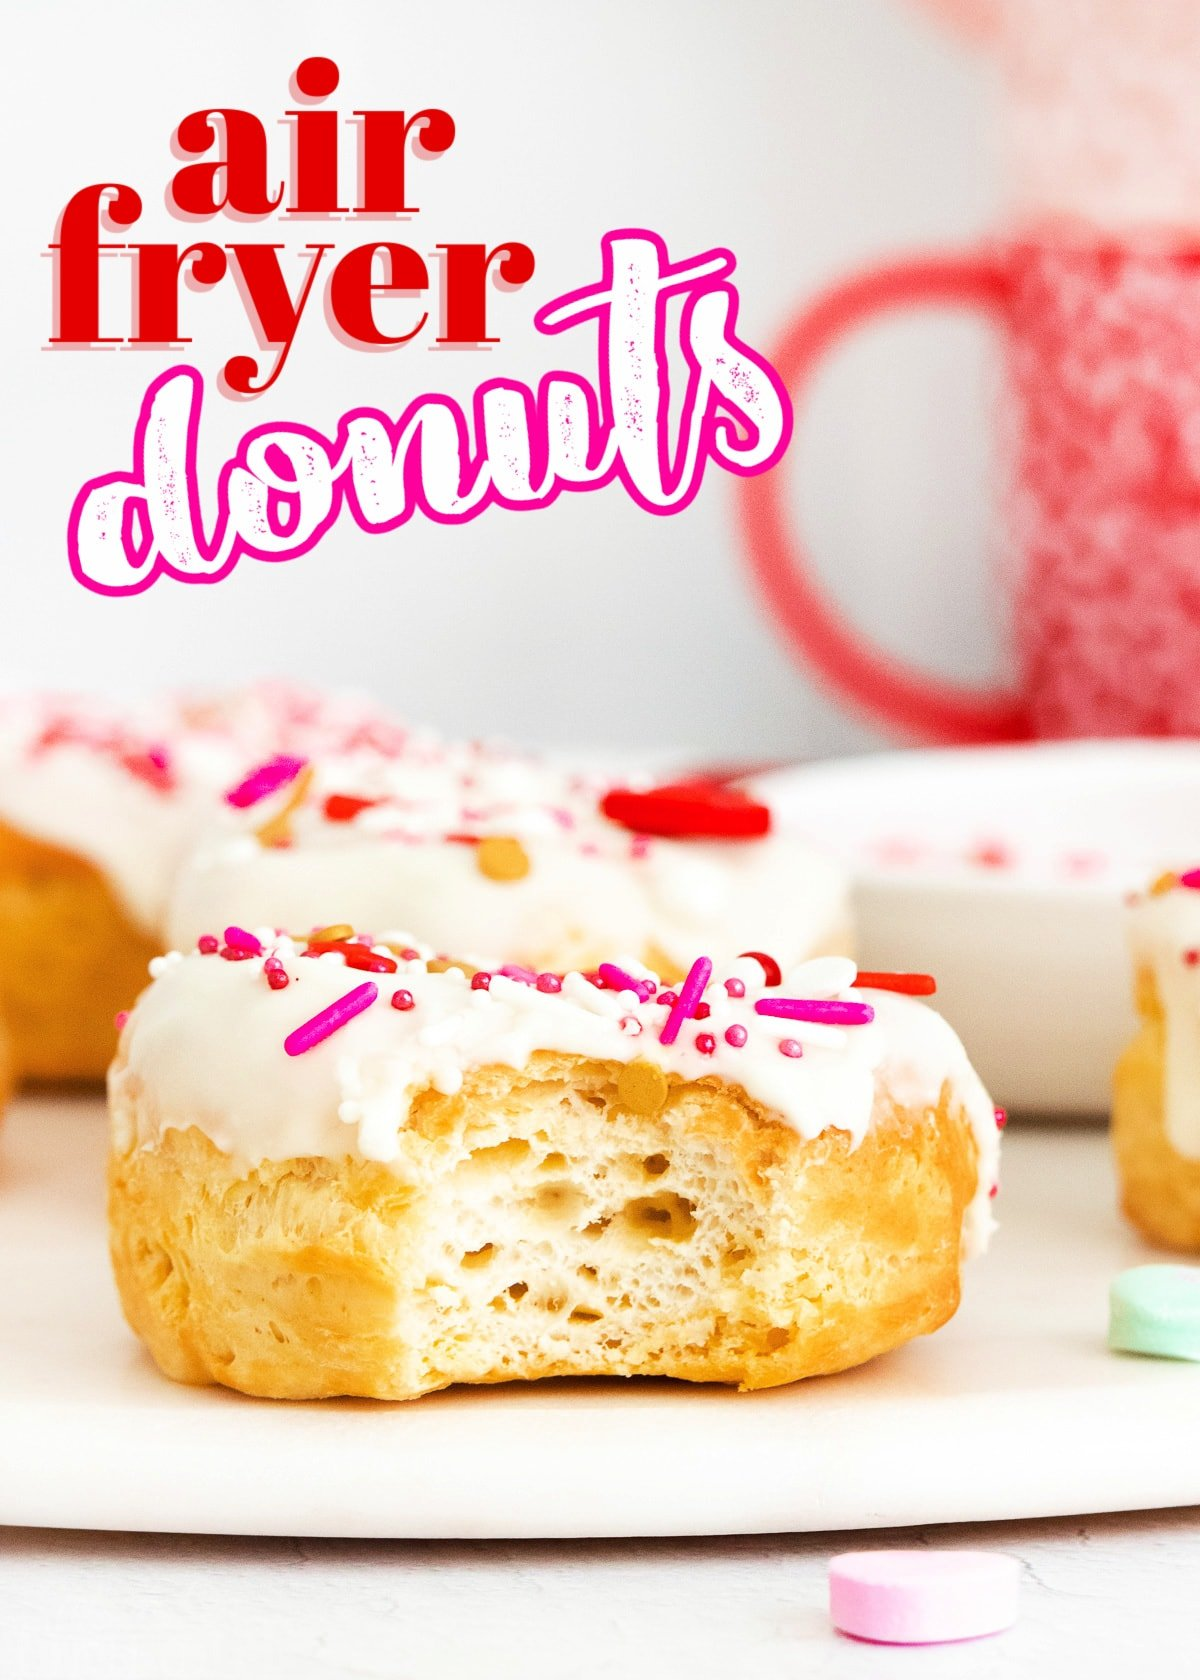 air fryer donut with vanilla glaze and valentines day sprinkles with bite taken and title overlay at top of image